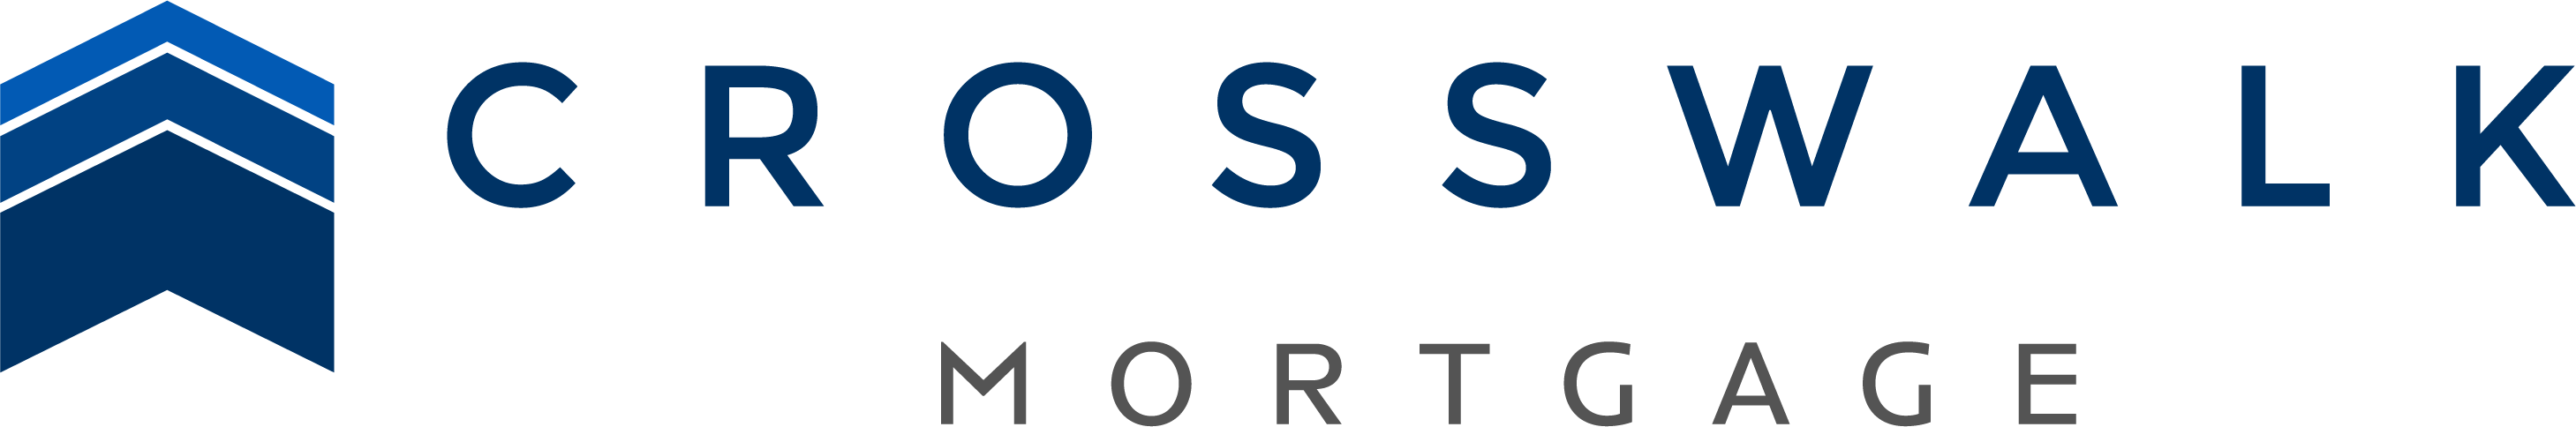 Crosswalk Mortgage, Inc. logo